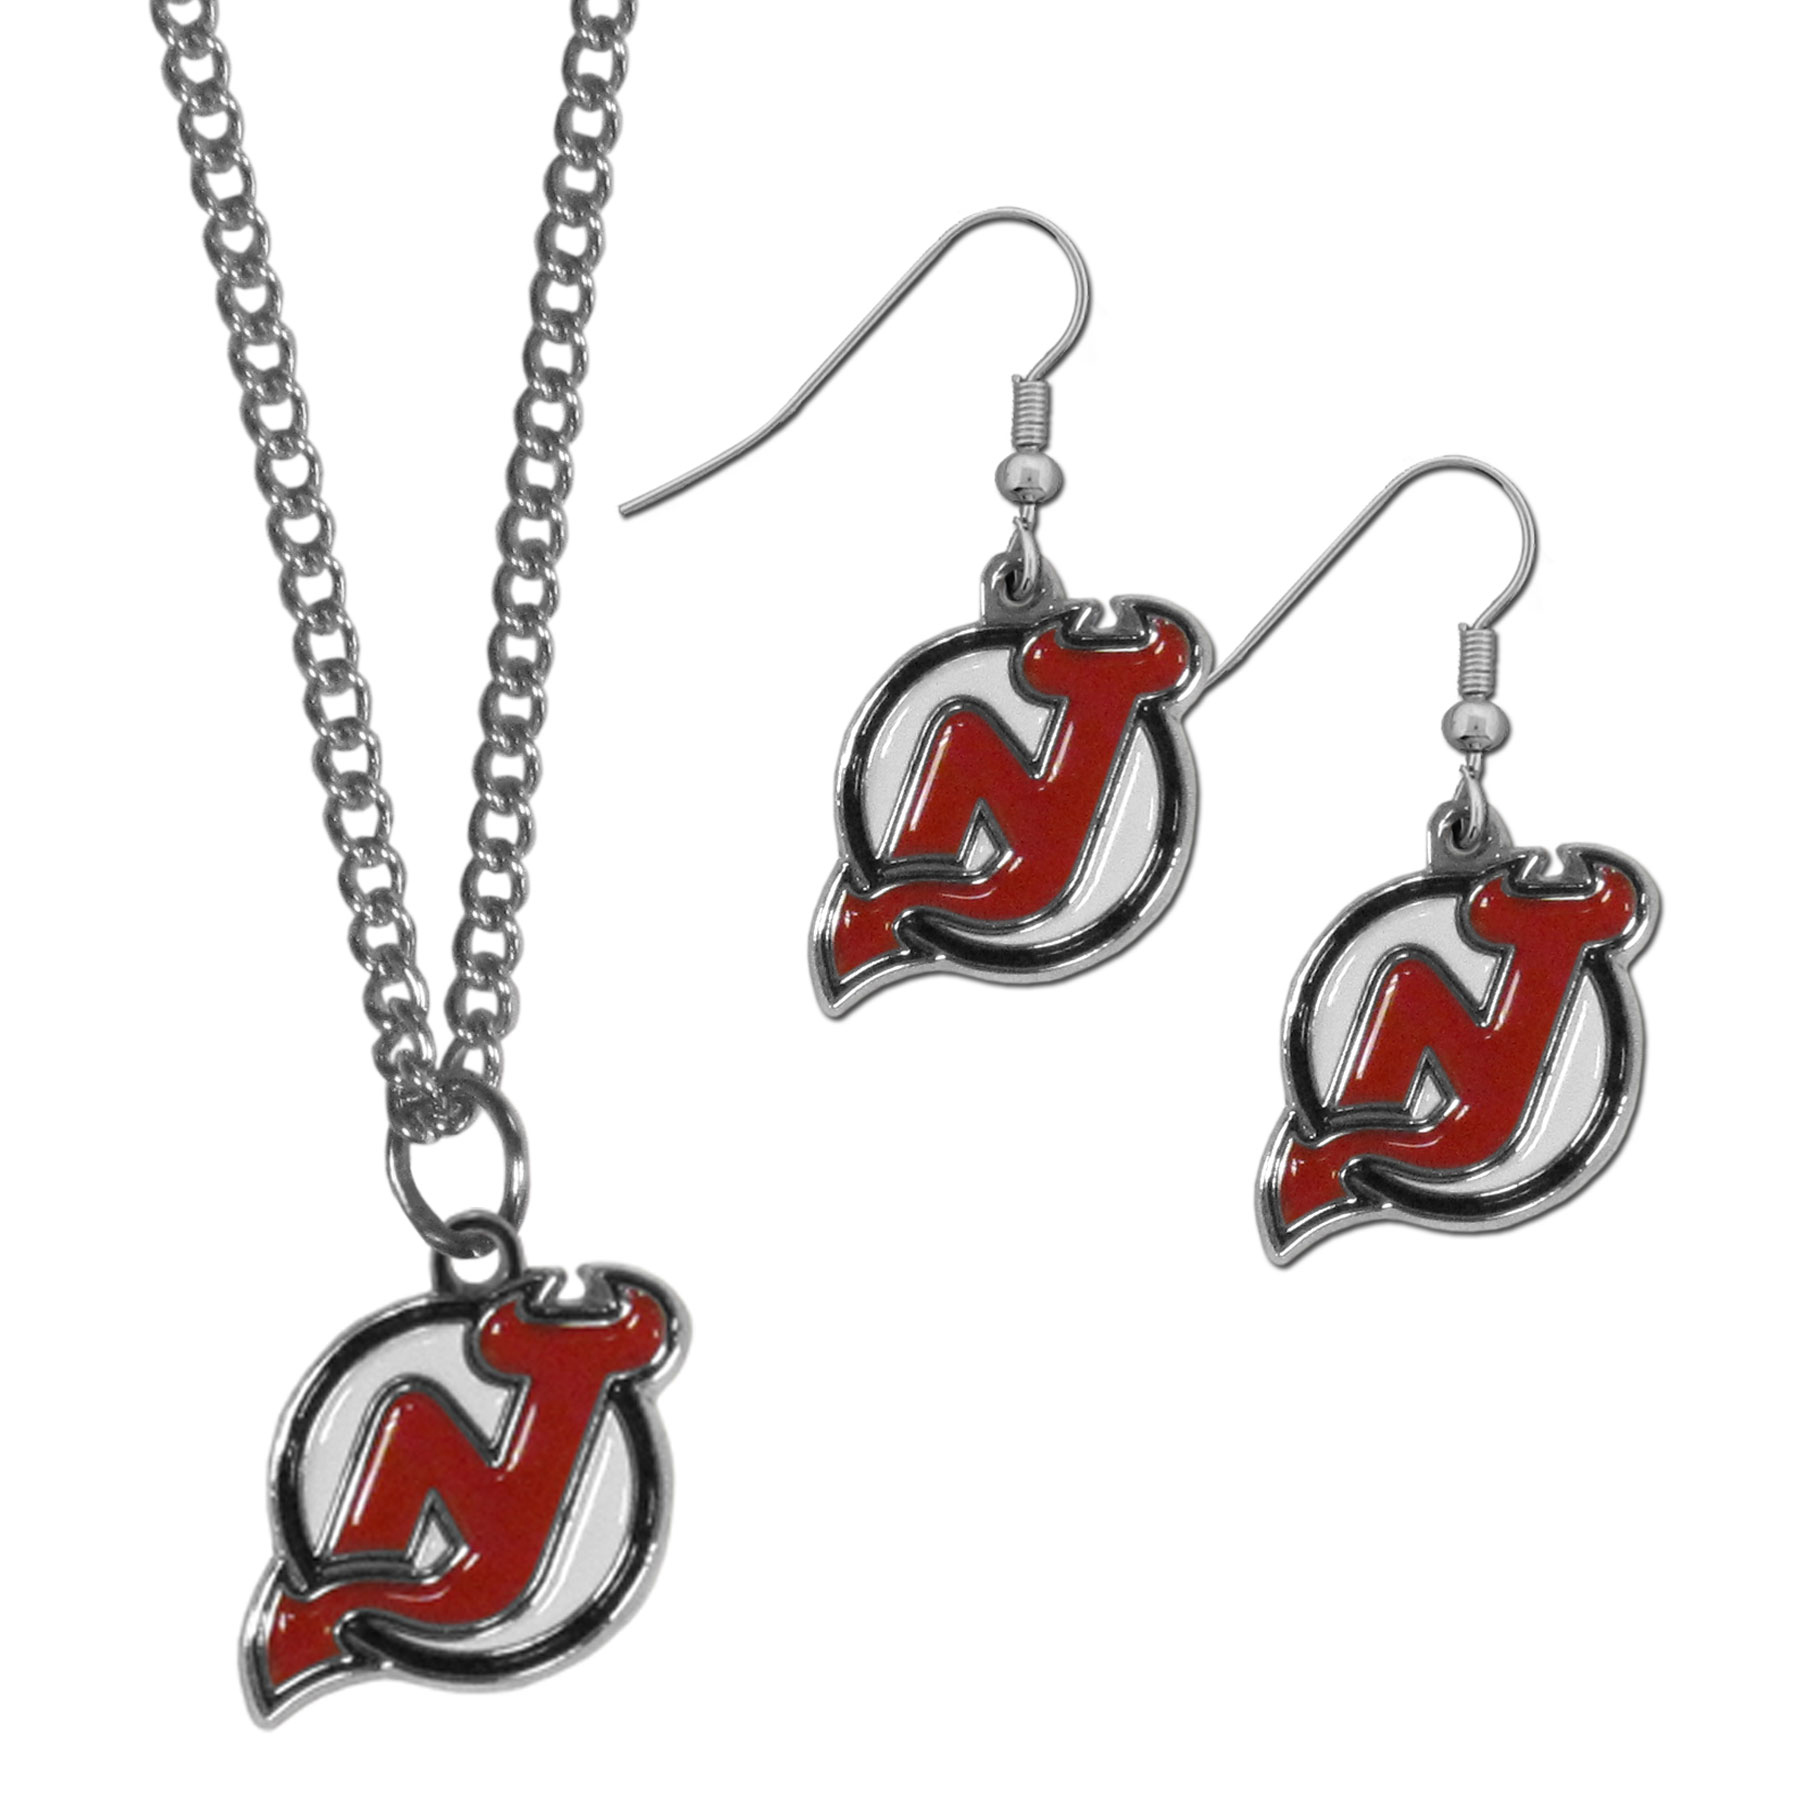 New Jersey Devils® Dangle Earrings and Chain Necklace Set - This classic jewelry set contains are most popular New Jersey Devils® dangle earrings and 22 inch chain necklace. The trendy, dangle earrings are lightweight and feature a fully cast metal team charm with enameled team colors. The matching necklace completes this fashion forward combo and is a spirited set that is perfect for game day but nice enough for everyday.